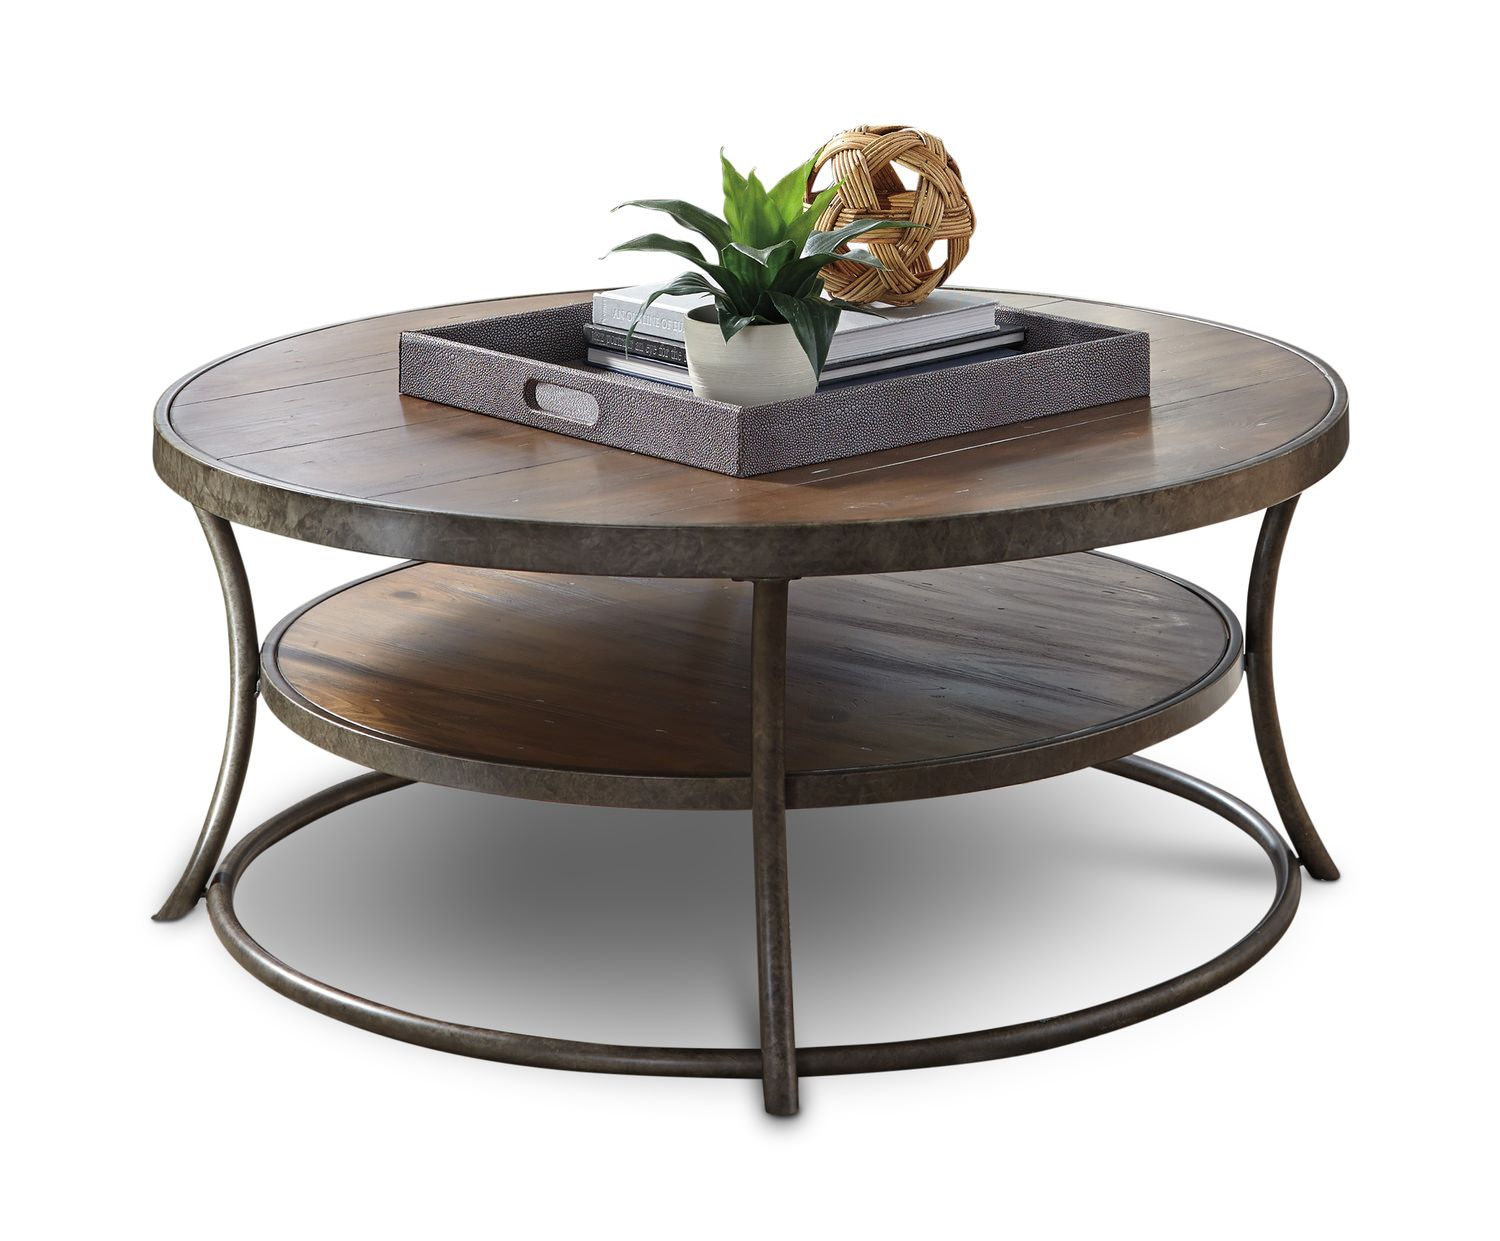 Nartina Round Coffee Table   Circle coffee tables, Round ...